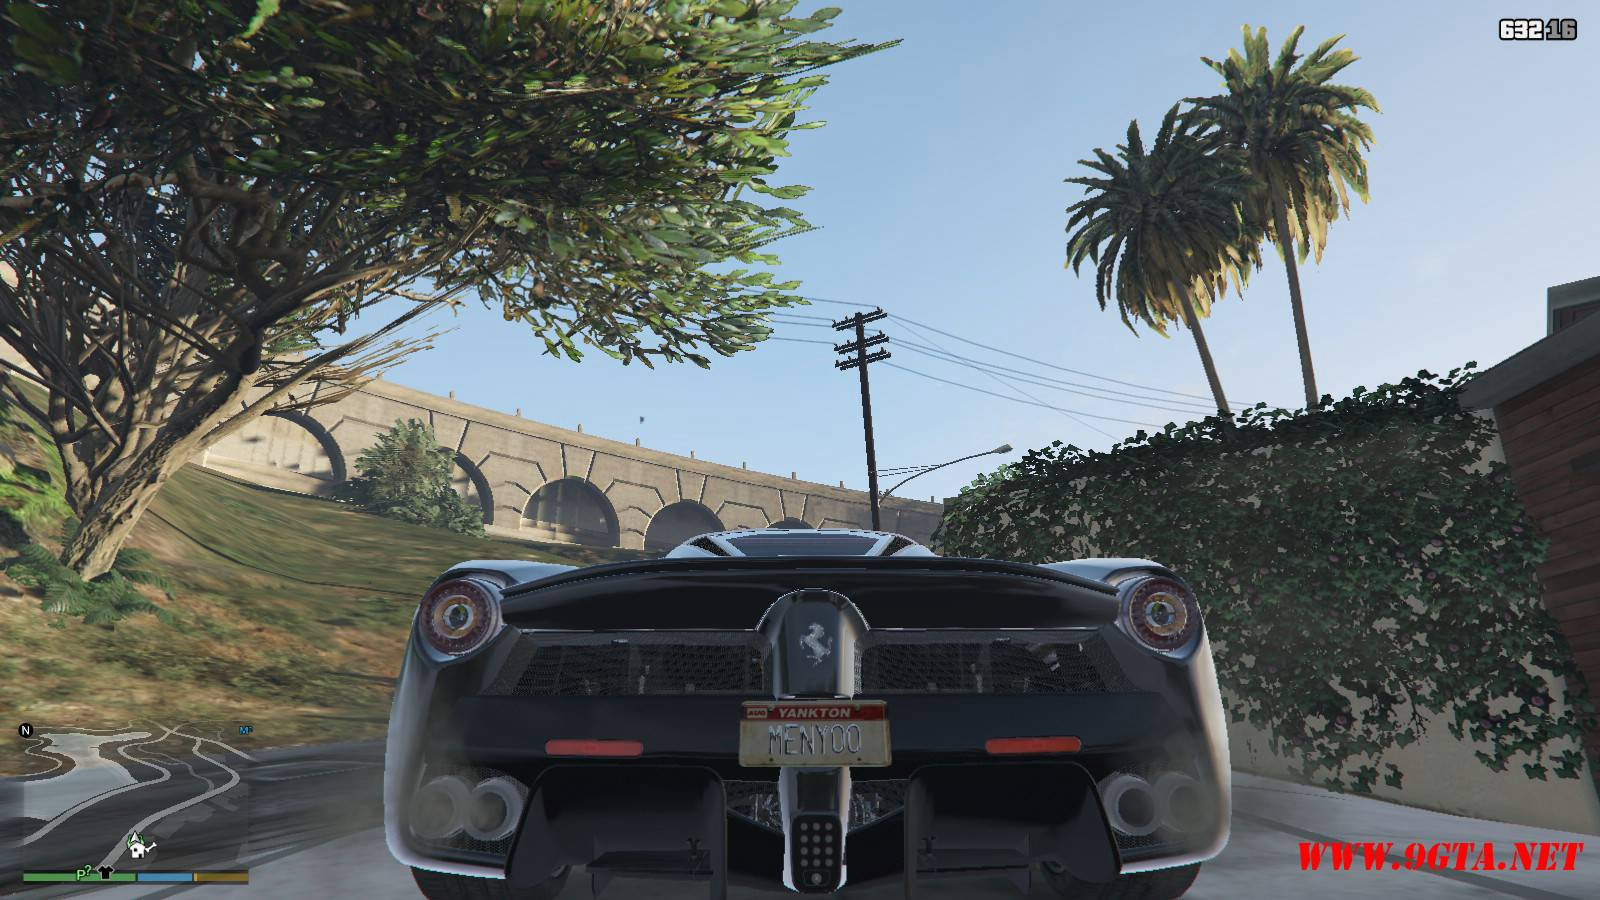 2015 Ferrari LeFerrari Mod For GTA5 (6)